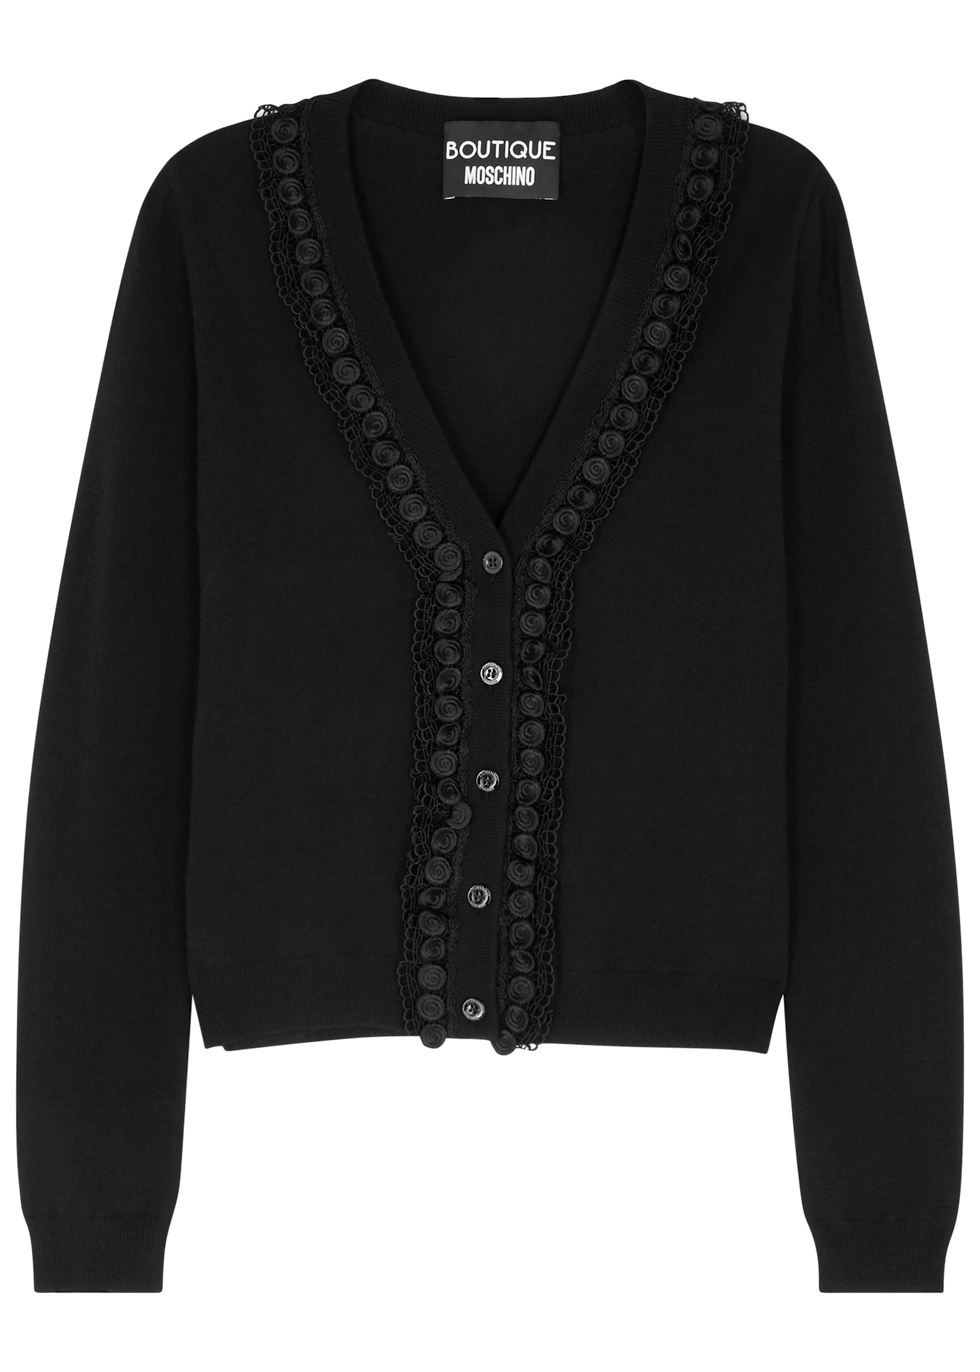 BOUTIQUE MOSCHINO BLACK LACE-TRIMMED JERSEY CARDIGAN